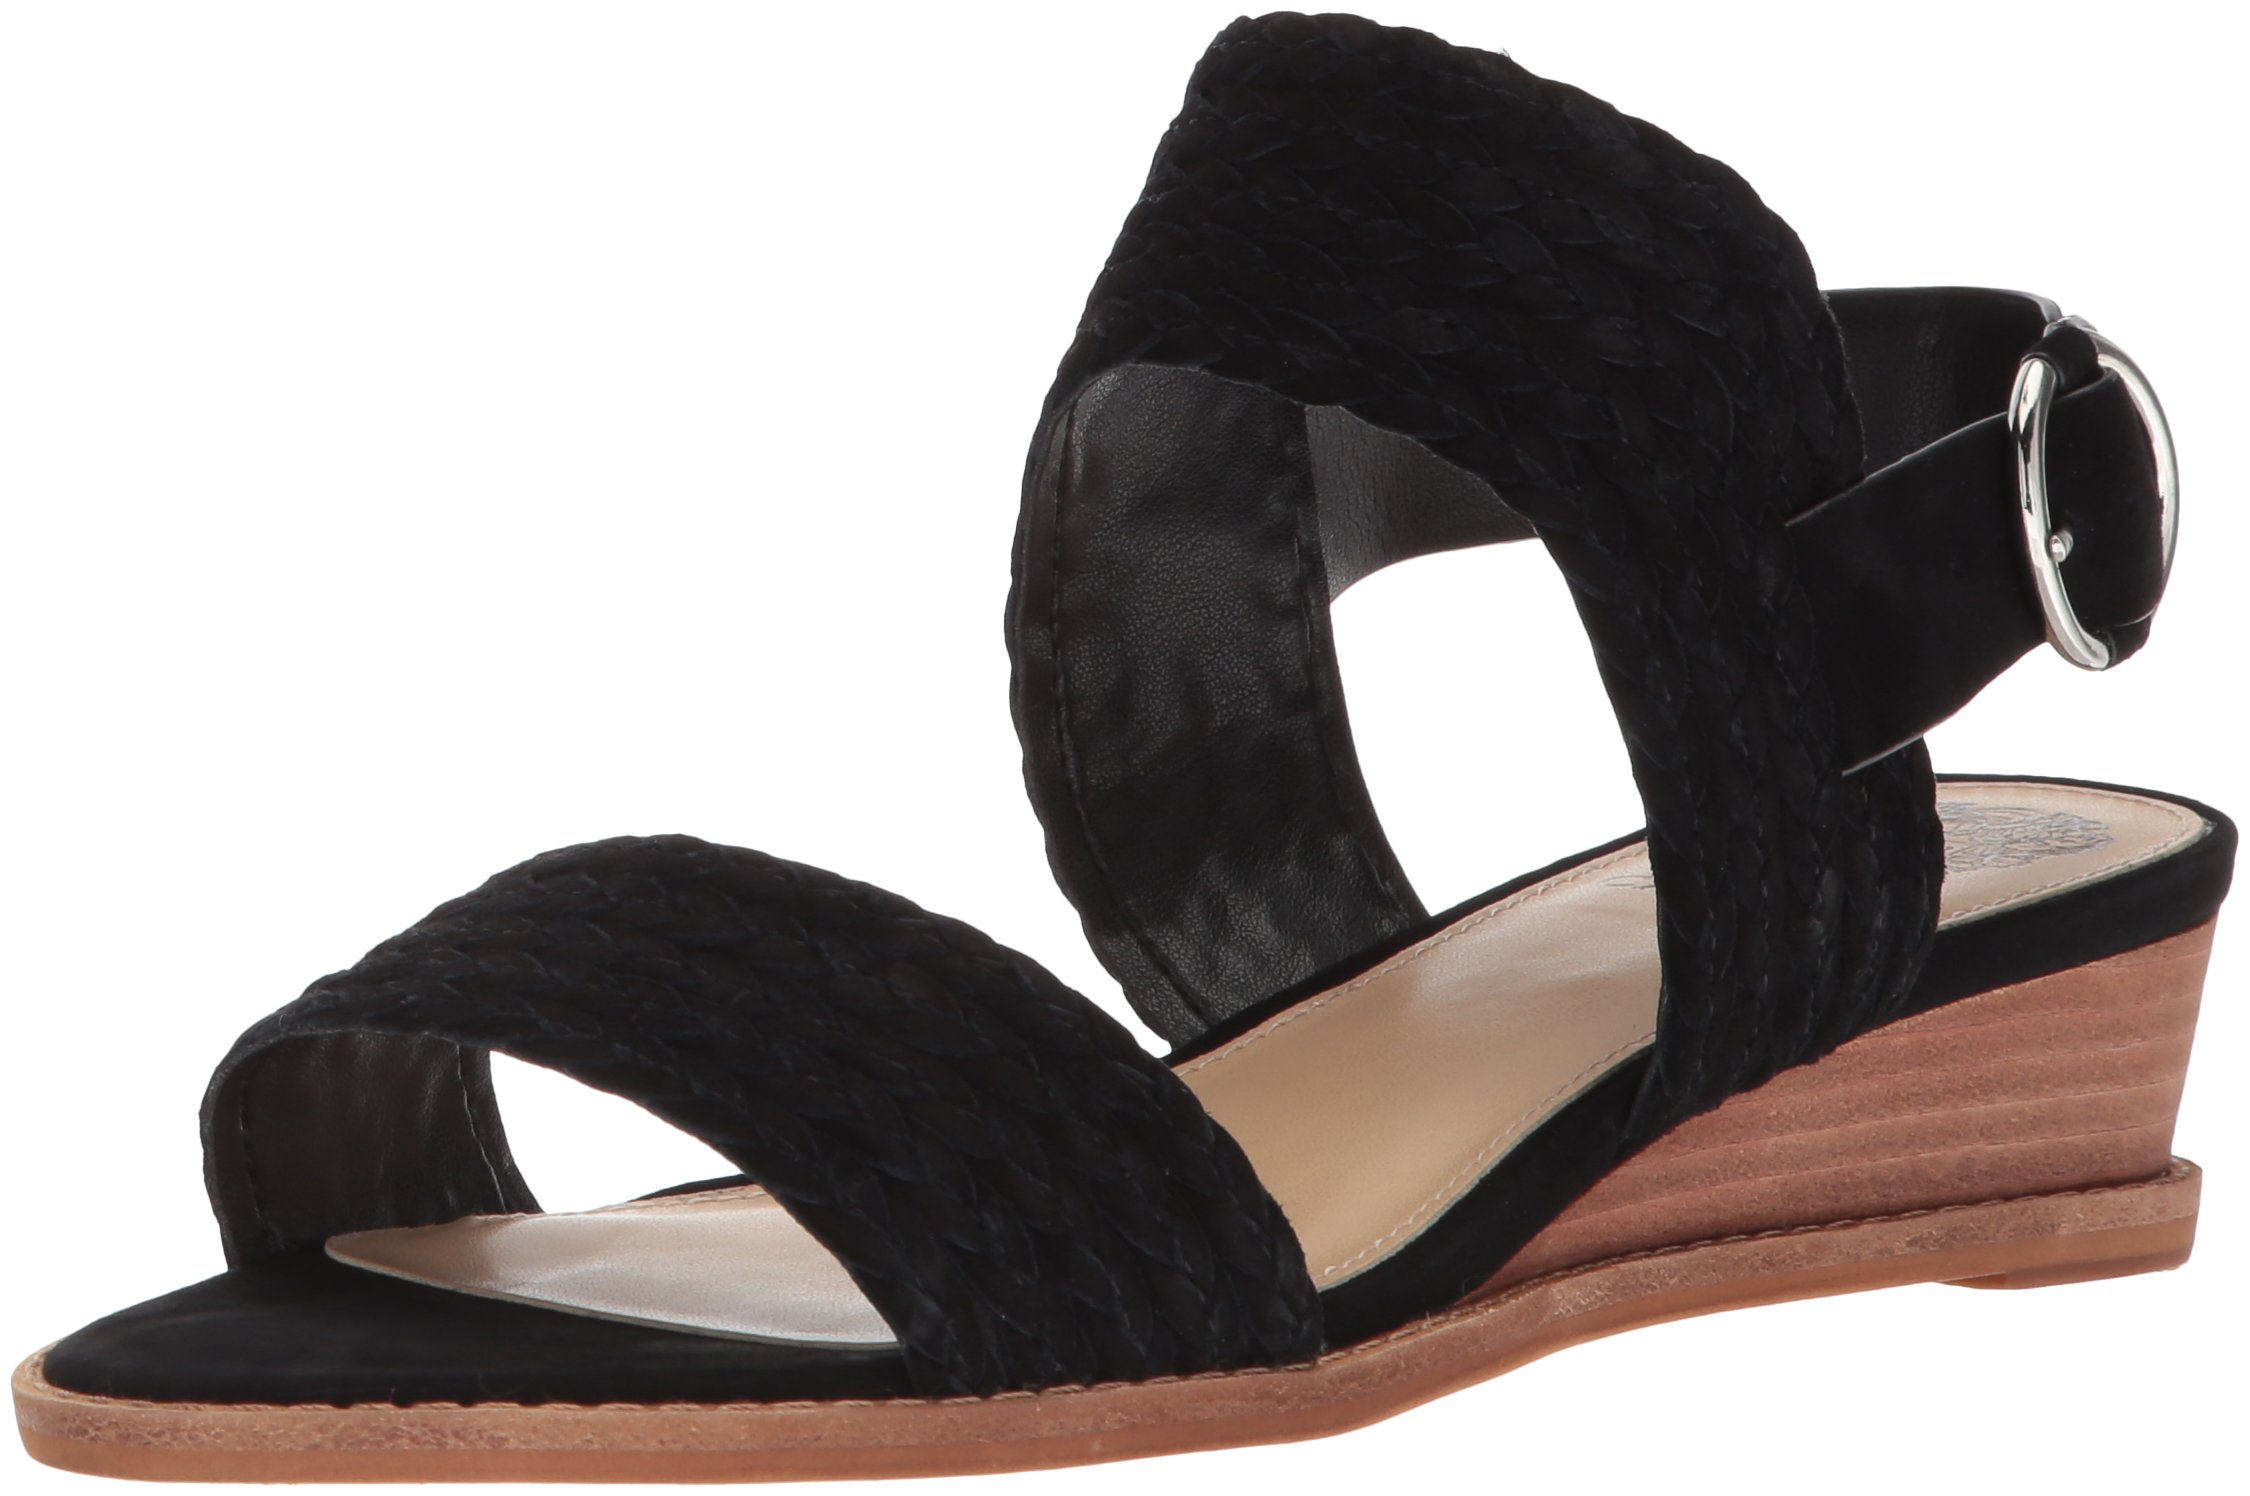 Vince Camuto Women's Raner Sandal, Black, 7.5 Medium US by Vince Camuto